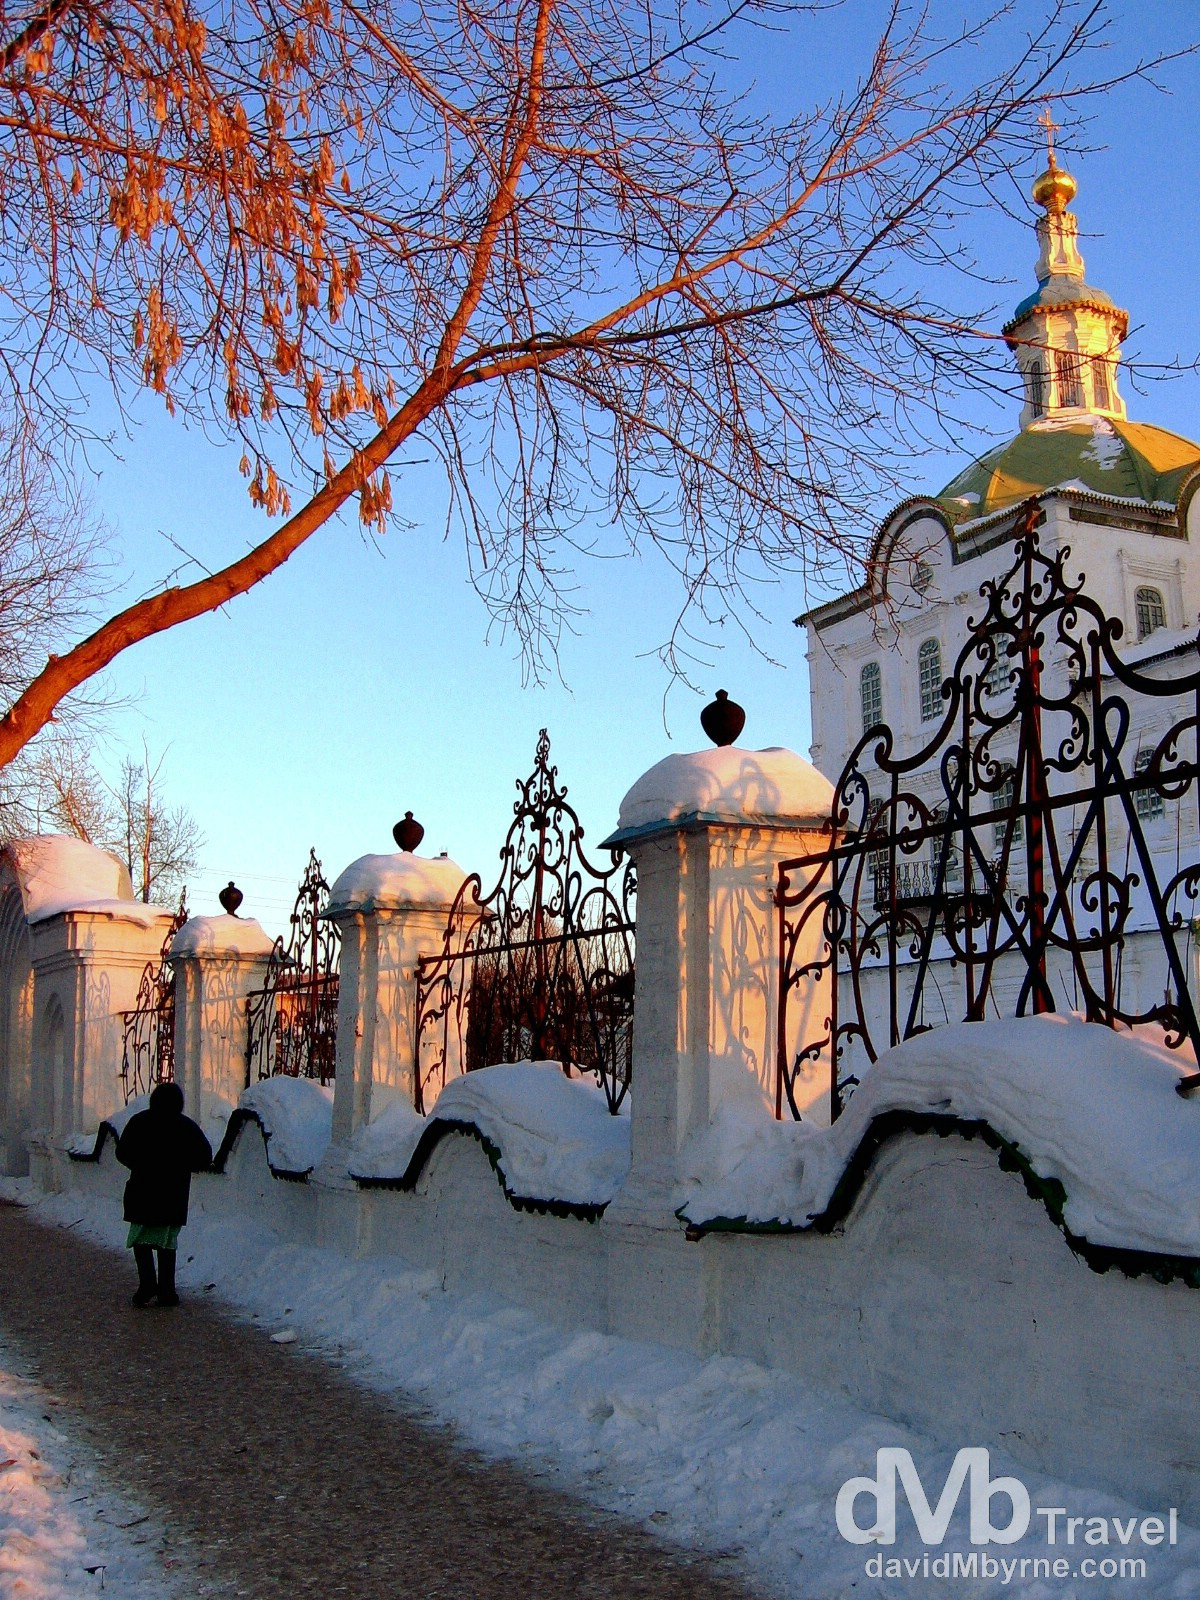 Walking on the icy paths at sunset outside the Mikhail Arkhangel Church, Old Town Tobolsk, Siberian Russia. February 22, 2006.